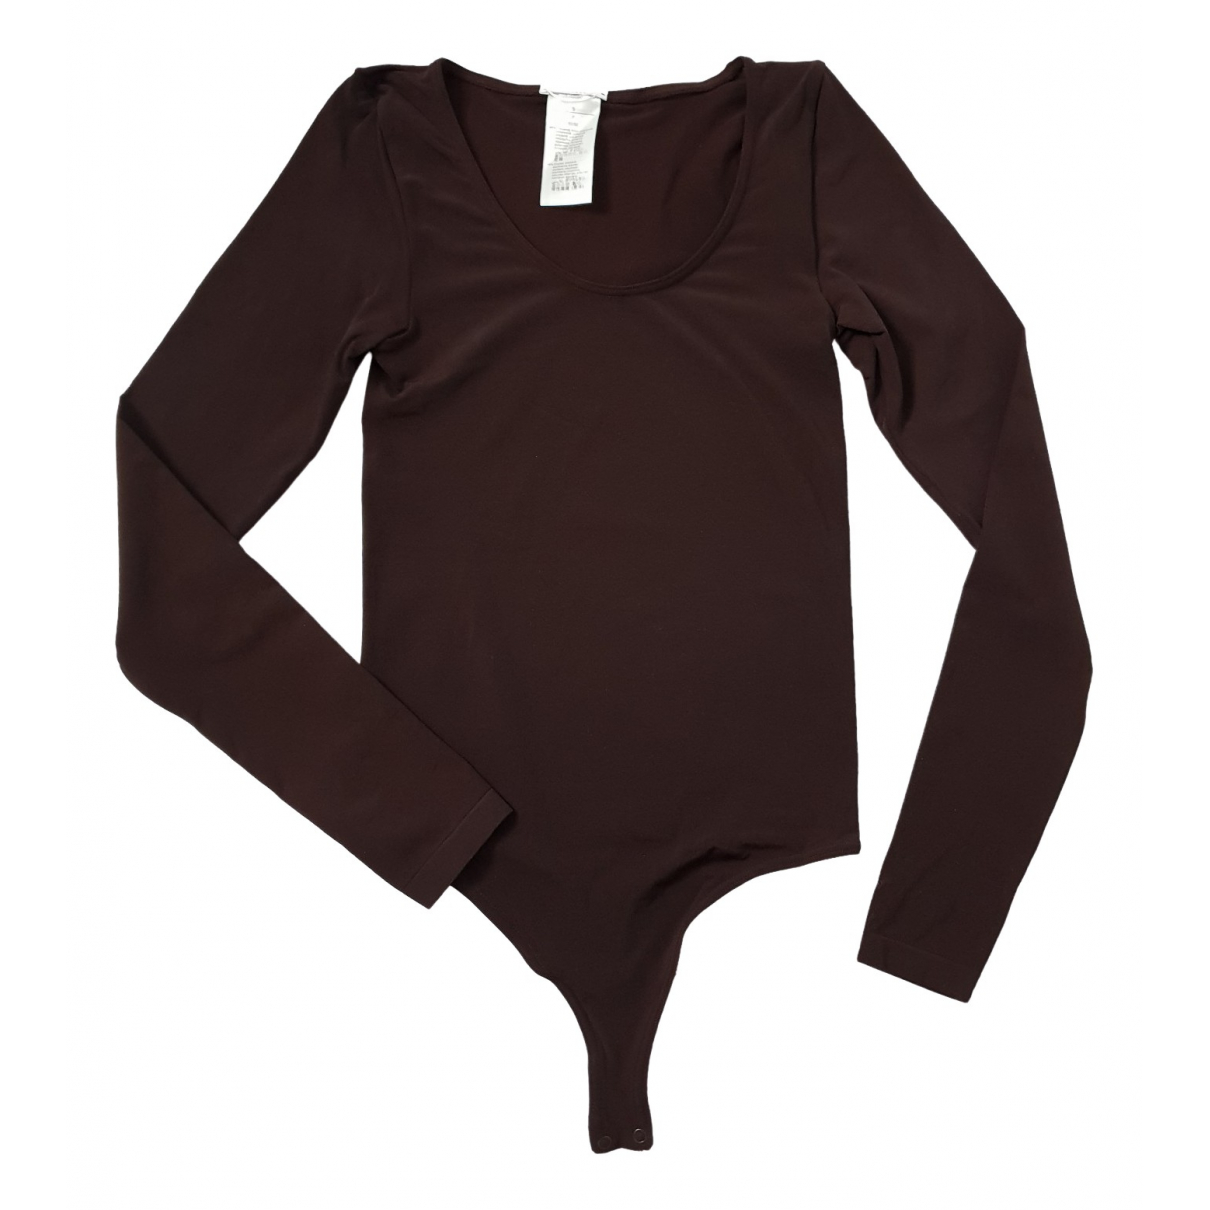 Wolford \N Brown  top for Women S International